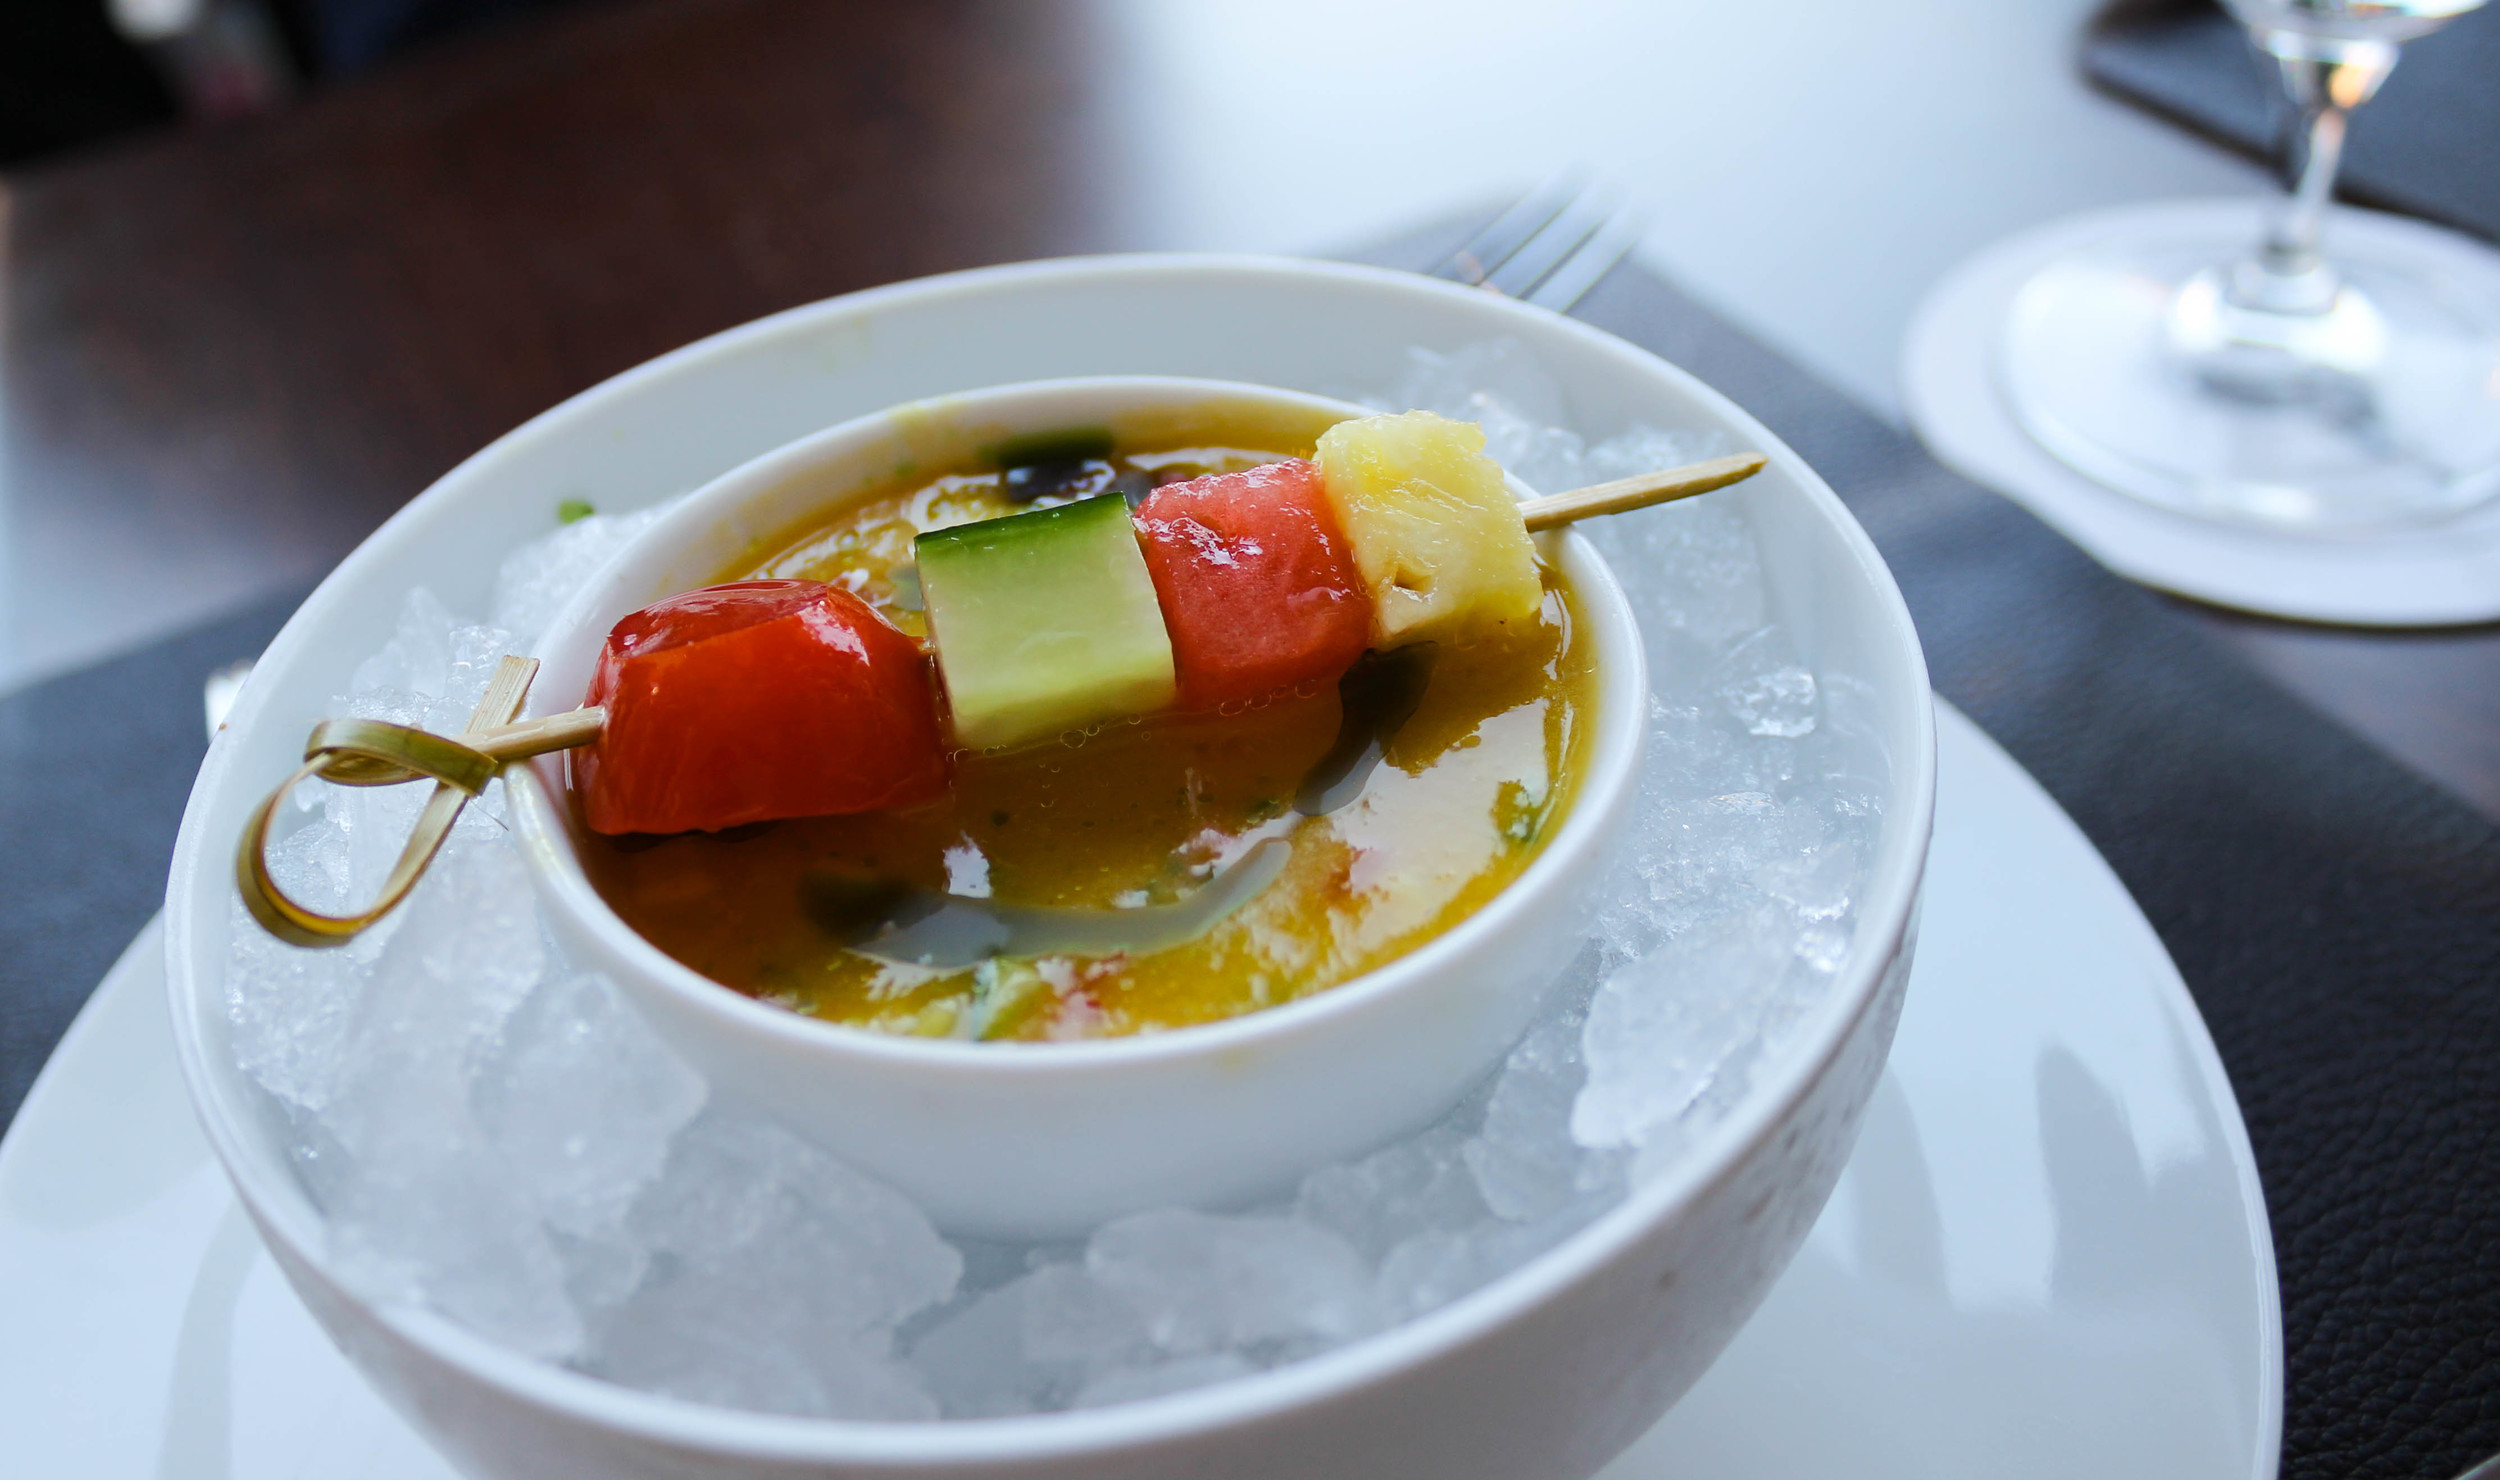 Chilled Yellow Tomato Gazpacho - watermelon, cucumber